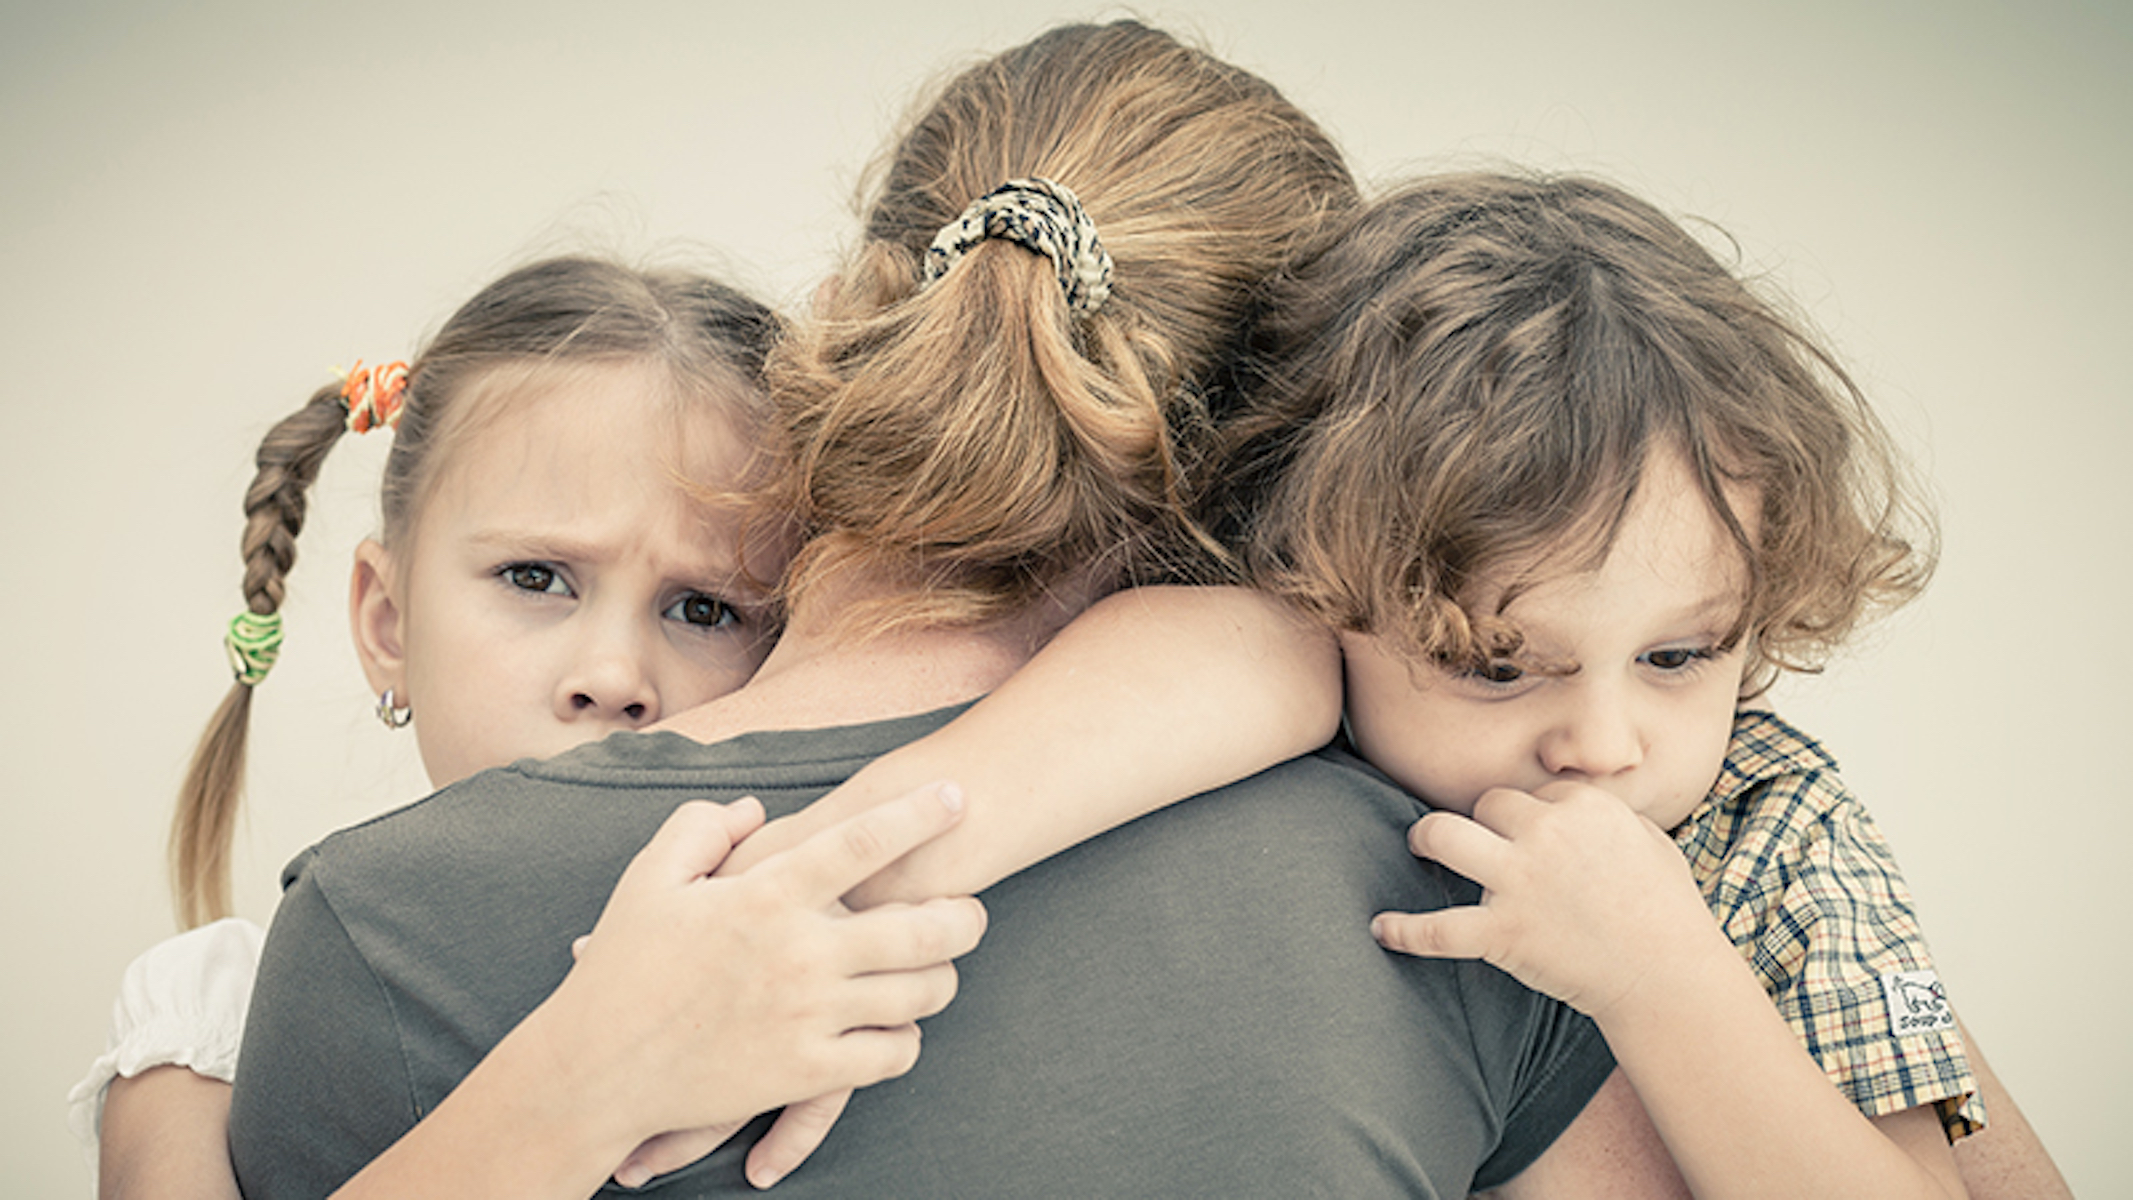 Faithful Mom of 6 Has 'Angels' Looking After Her When Husband Abandons Them